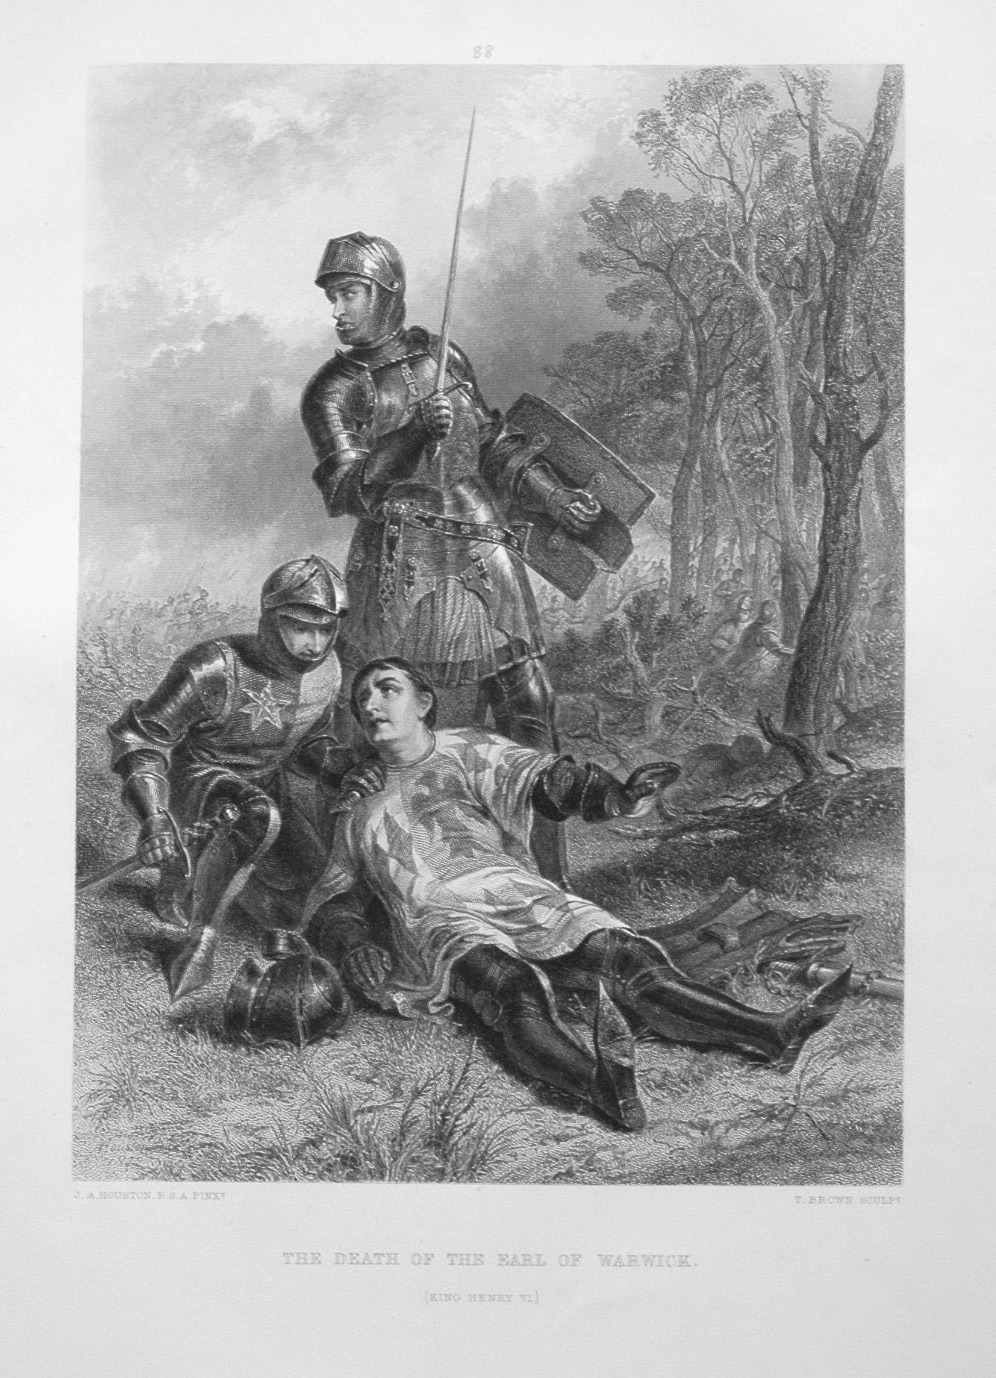 The Death of the Earl of Warwick.